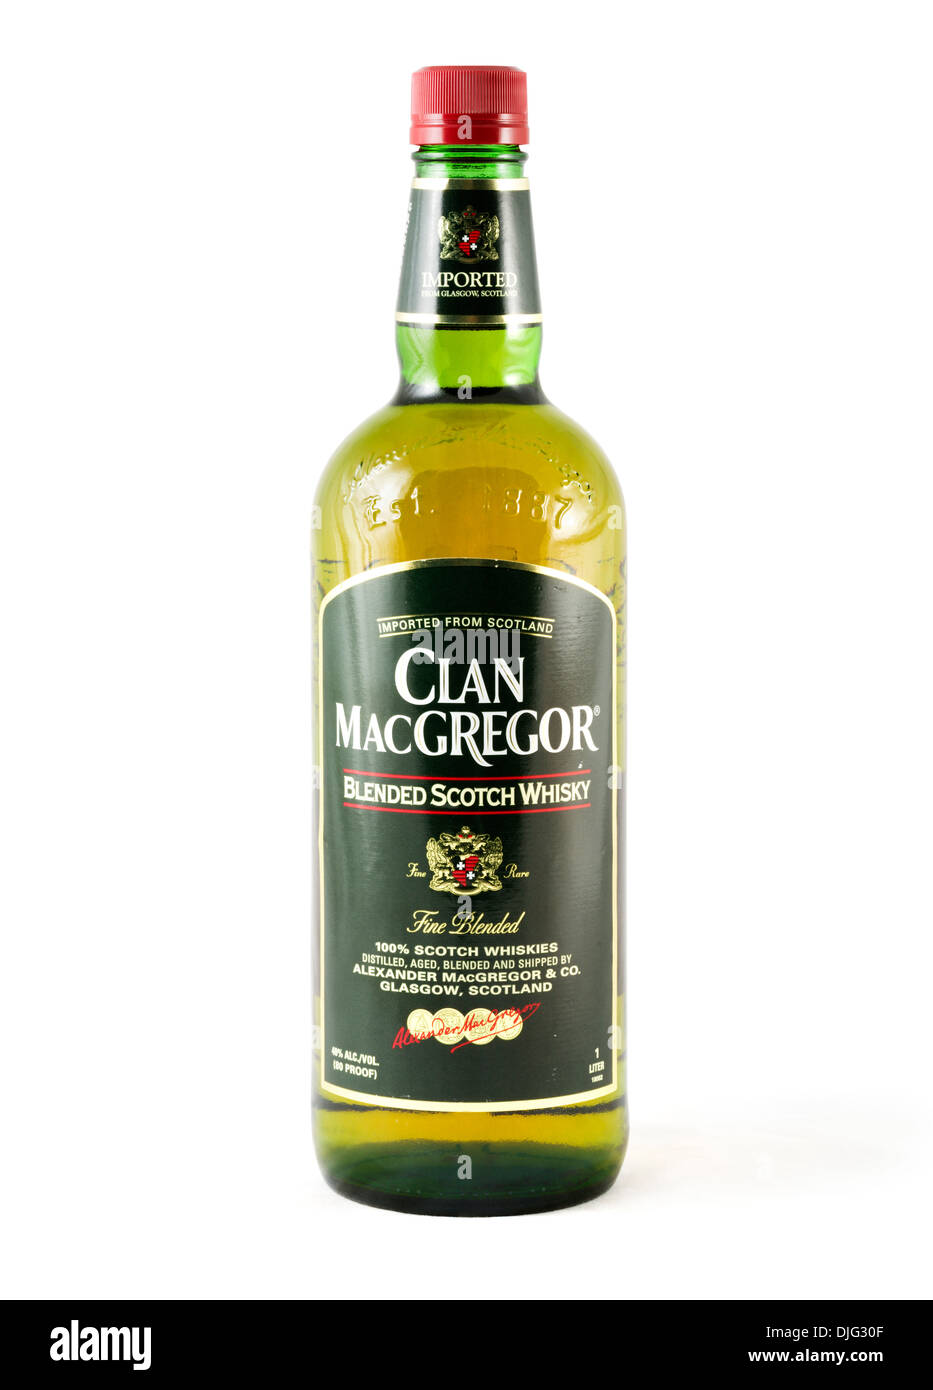 Bottle of Clan MacGregor imported blended Scotch Whisky, USA - Stock Image